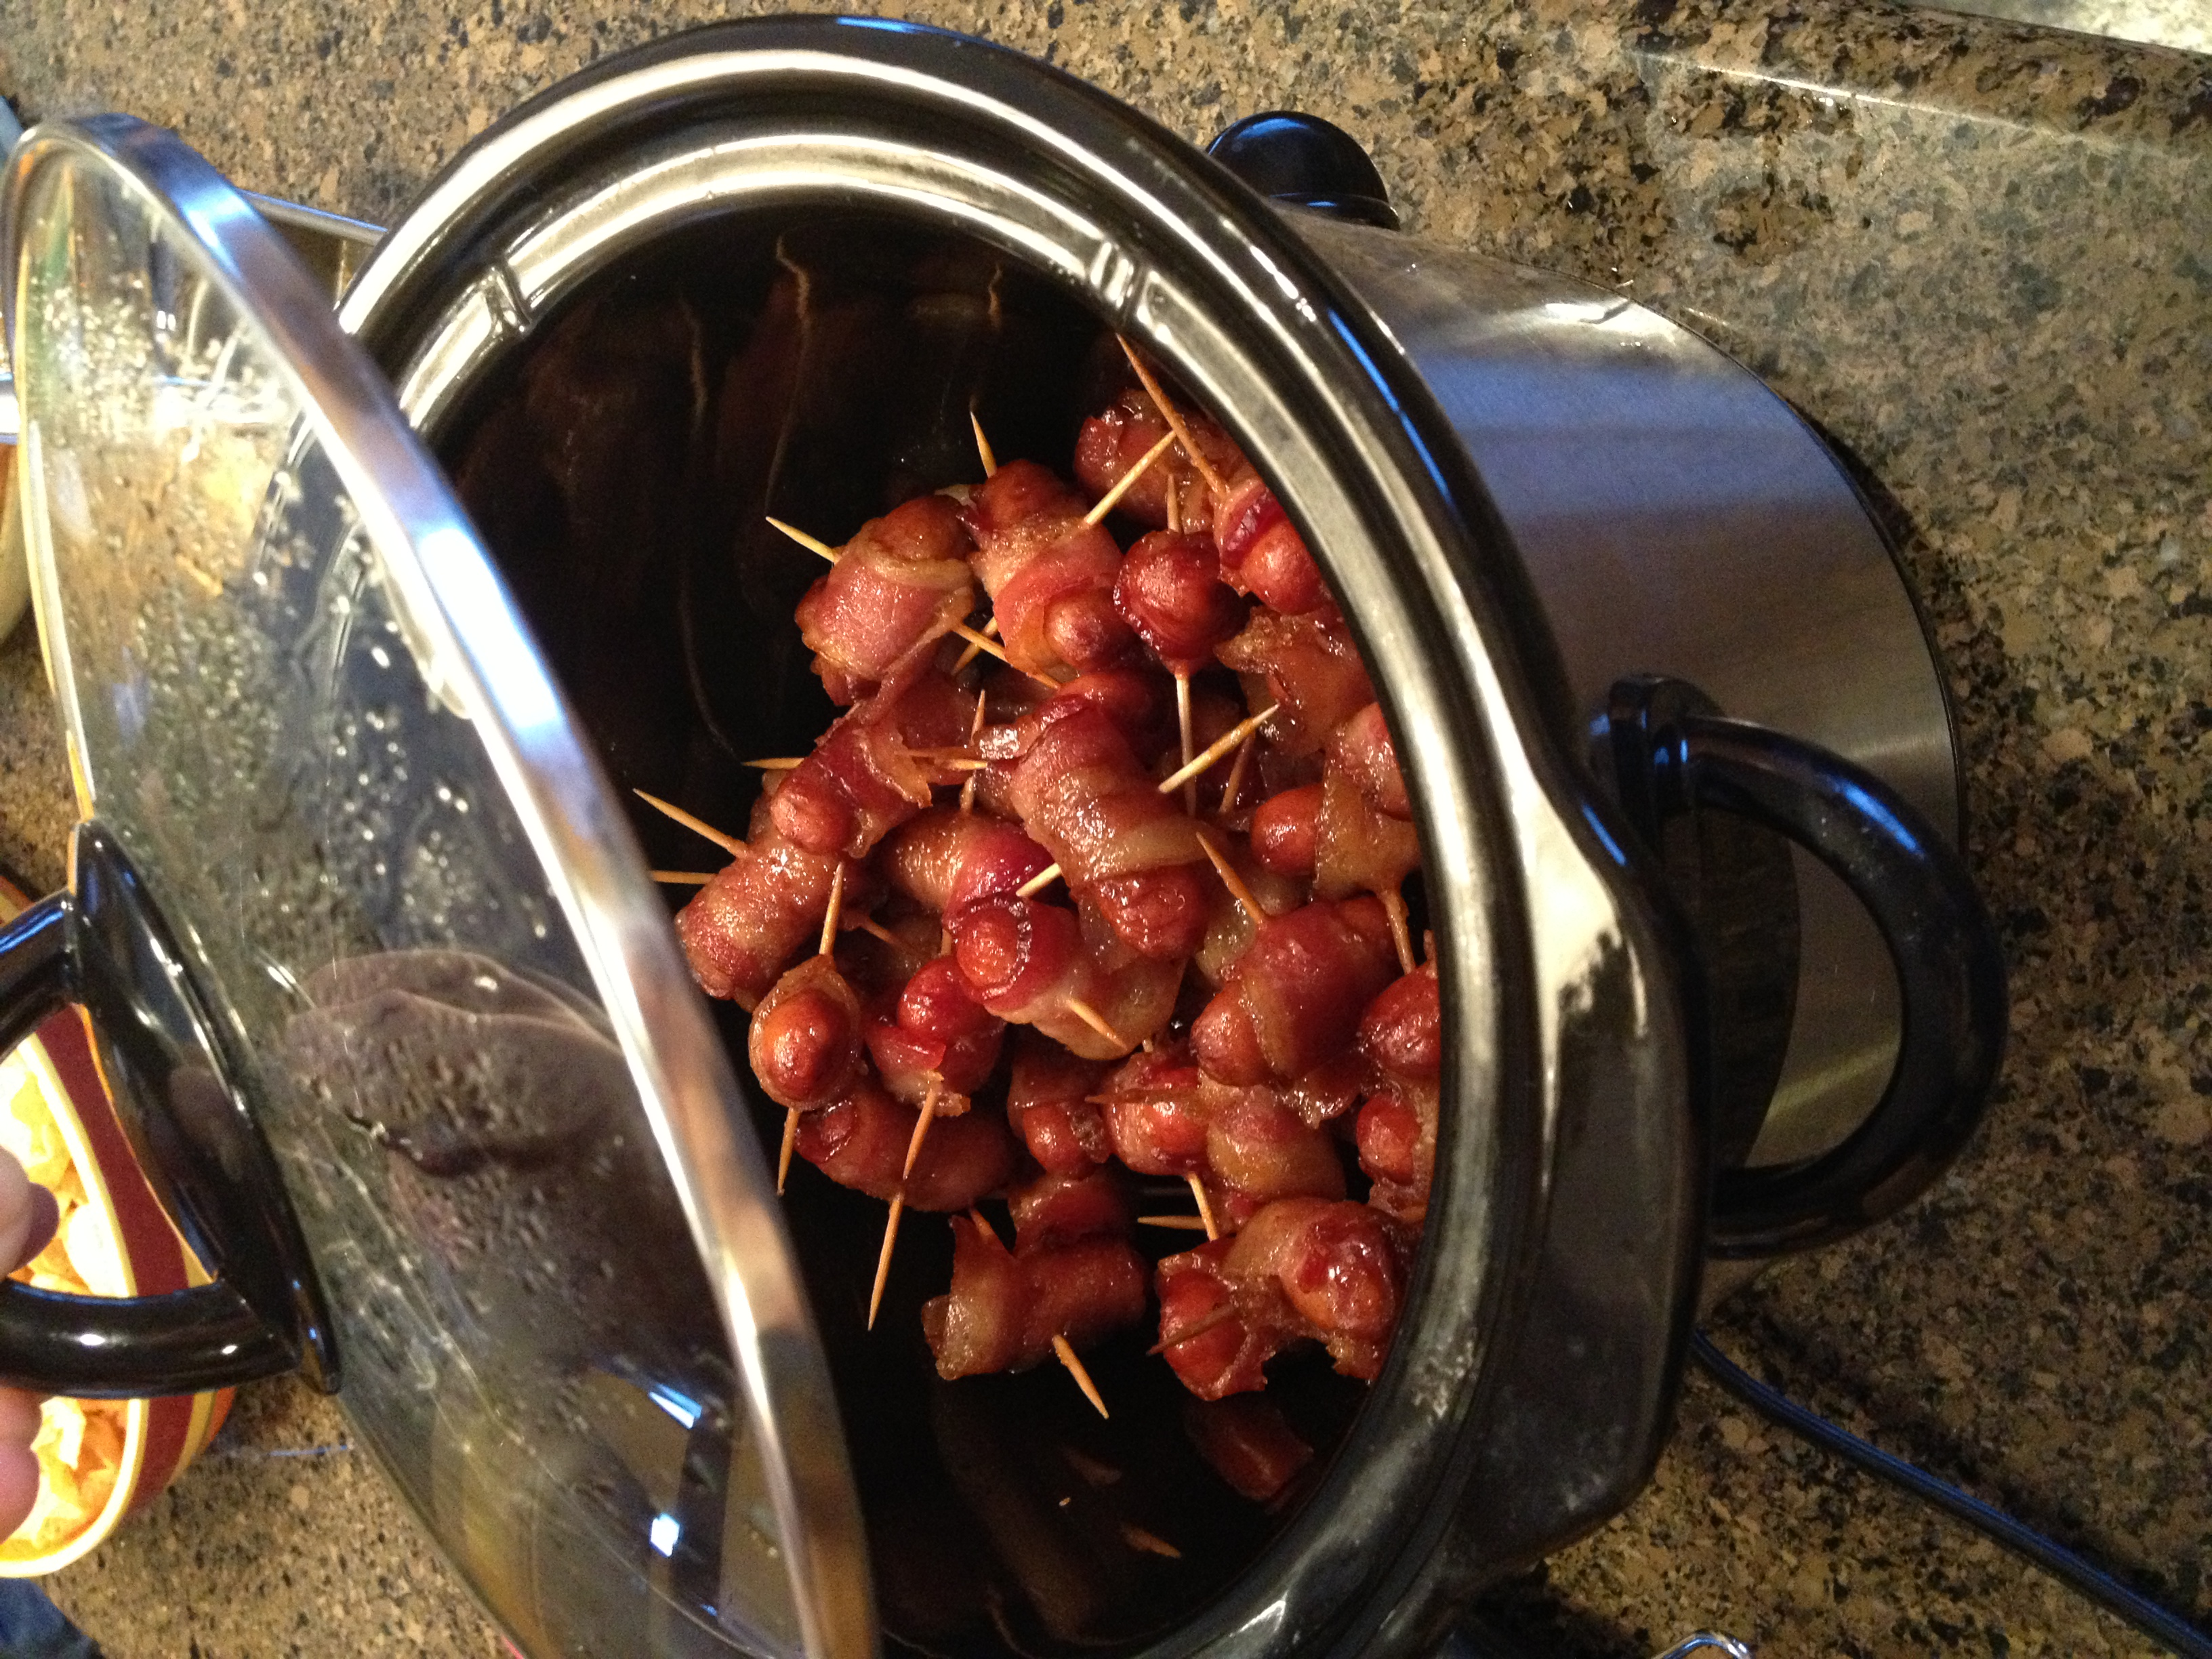 You don't have to use toothpicks, but if you do, don't use the colored ones. The dye from the colored toothpicks cooks off on the bacon. Place the bacon wrapped smokies in the crock pot, seam side down.